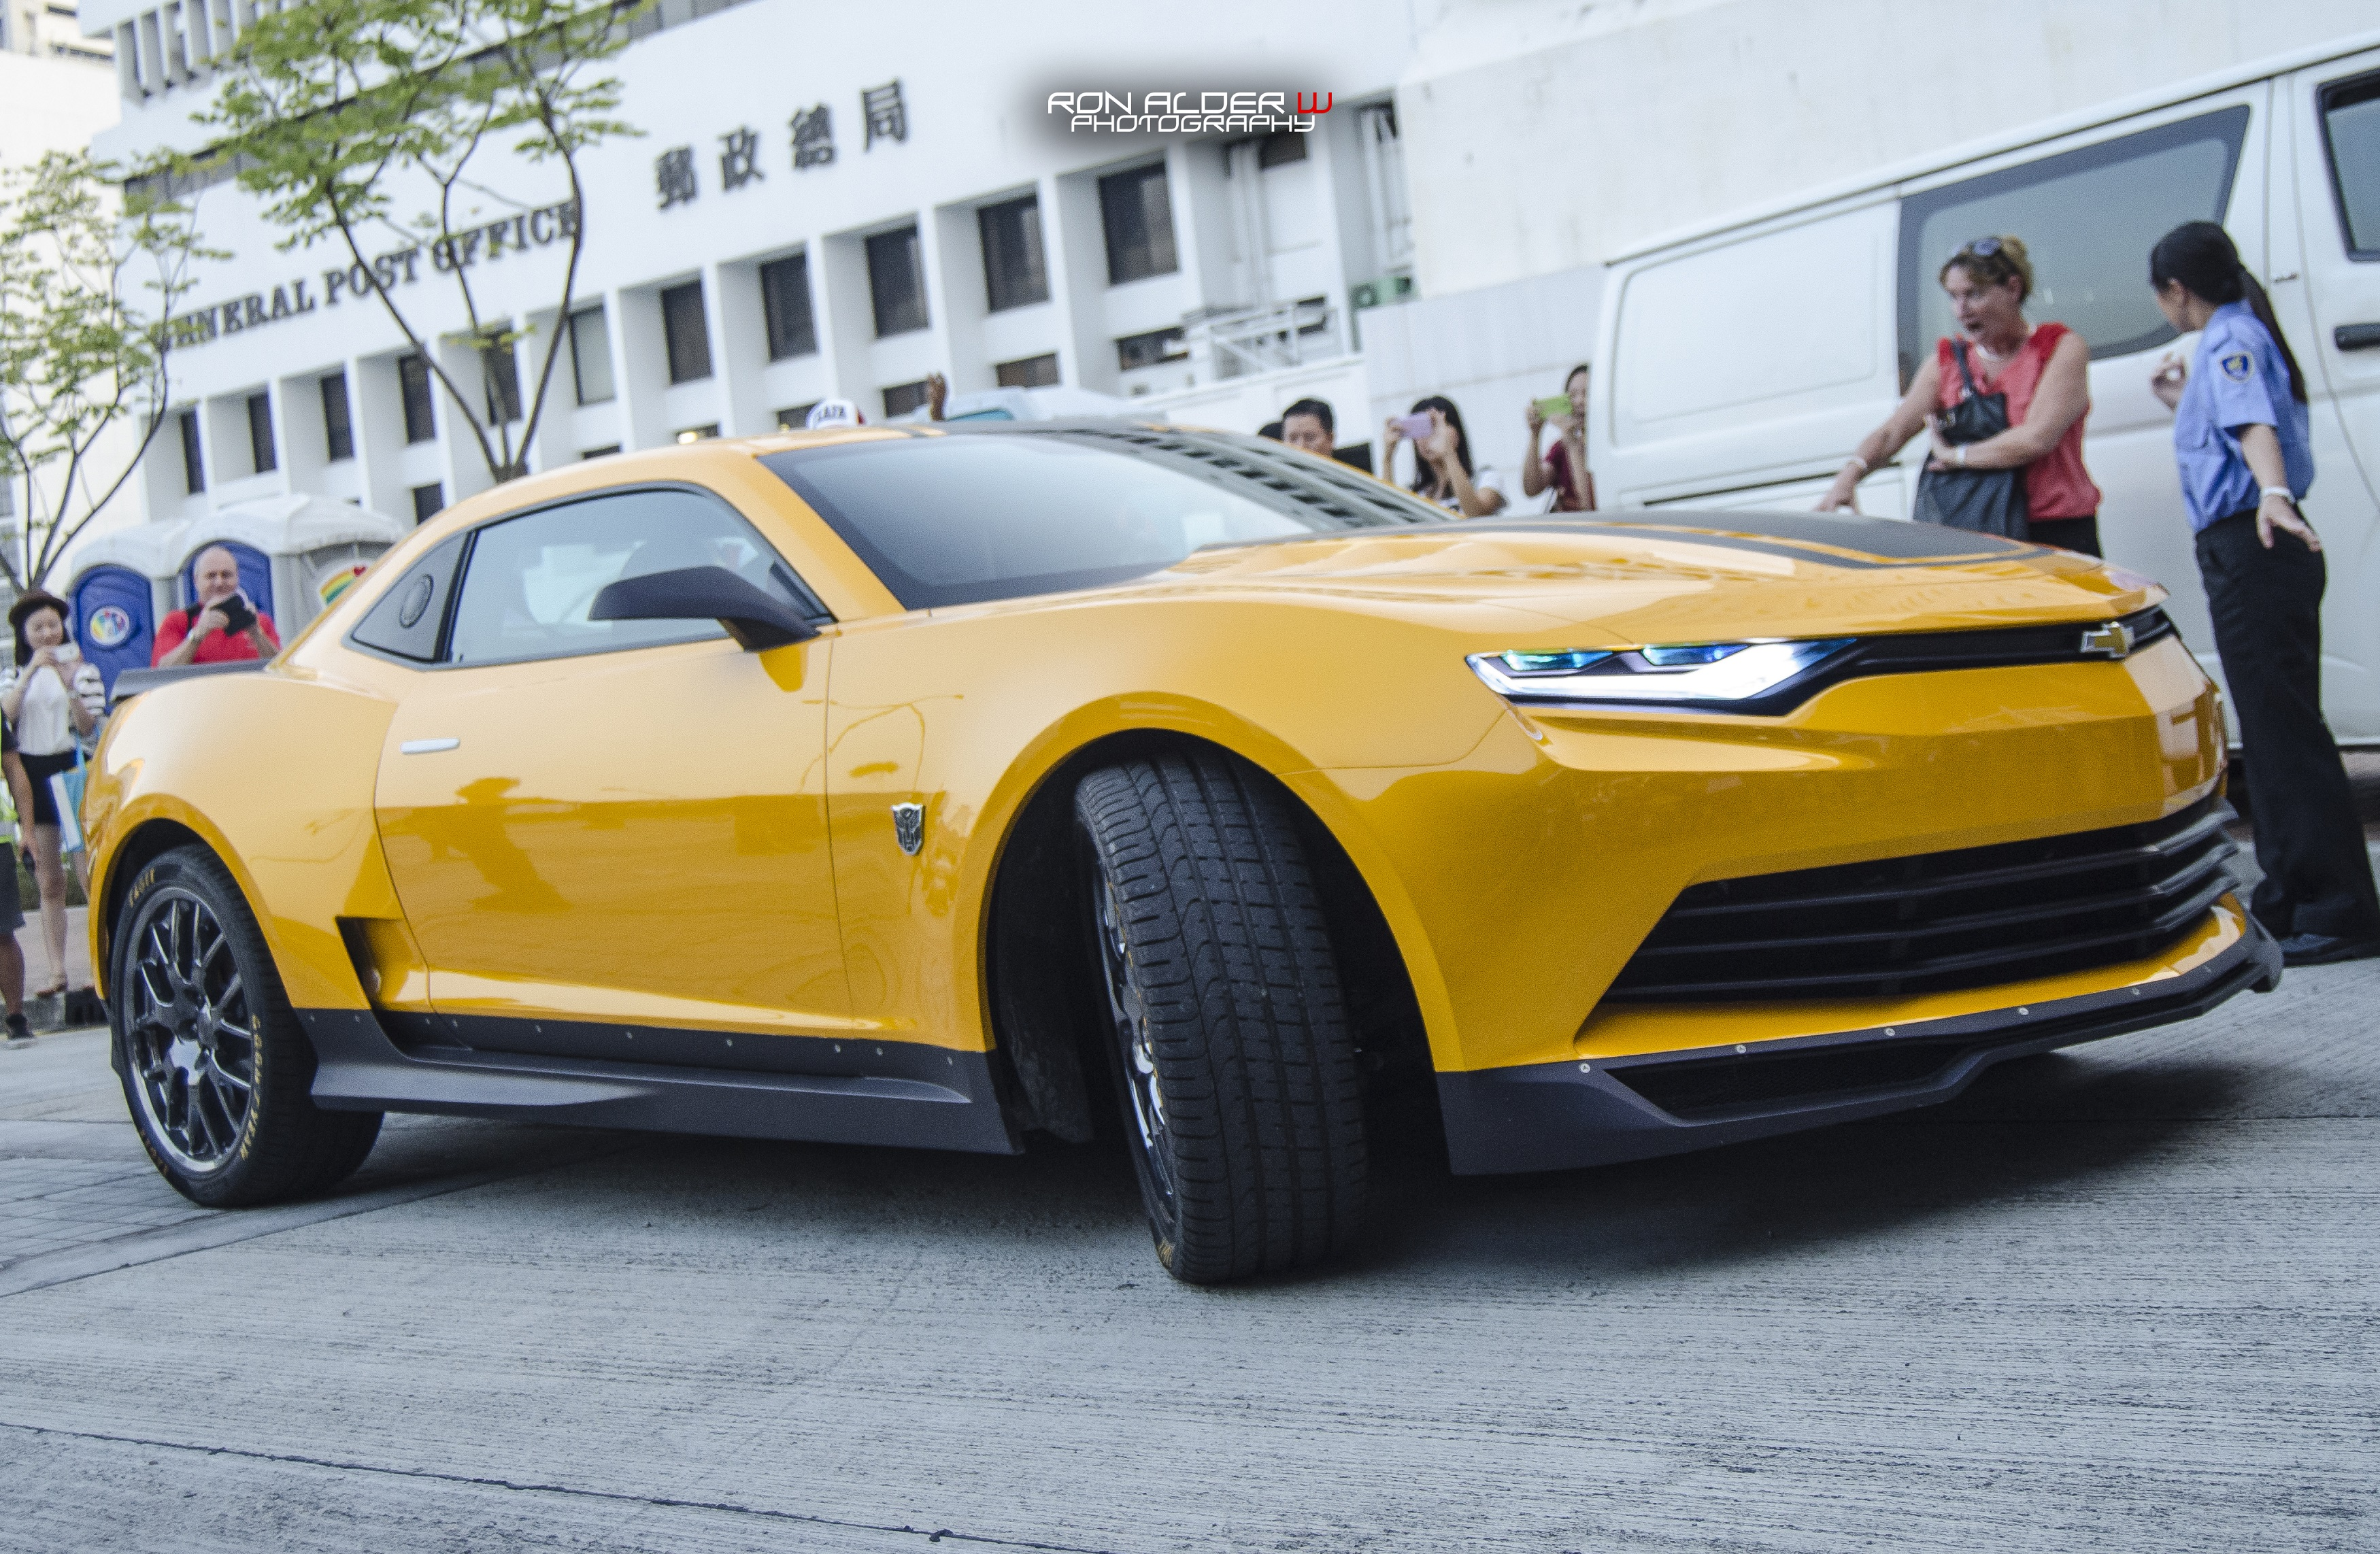 2014 chevrolet transformers 4 bumblebee camaro gallery 529622 top speed. Black Bedroom Furniture Sets. Home Design Ideas